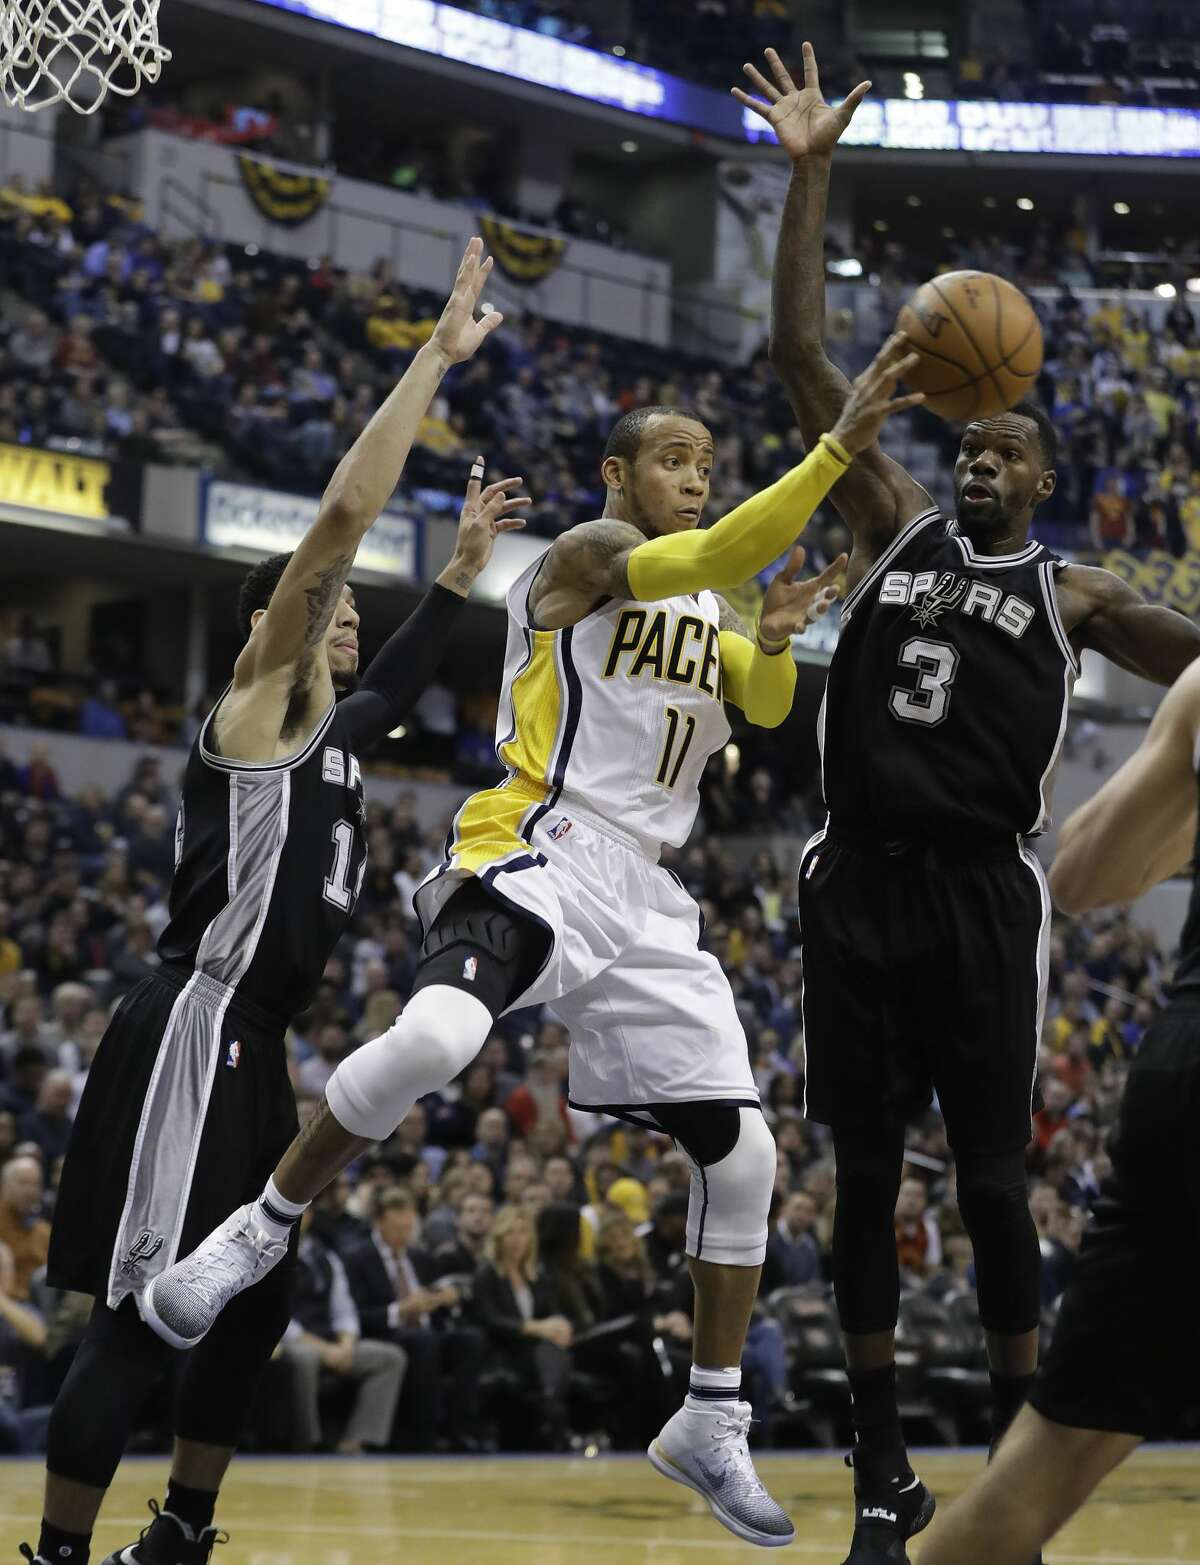 Indiana Pacers' Monta Ellis (11) makes a pass against San Antonio Spurs' Danny Green, left, and Dewayne Dedmon during the first half of an NBA basketball game Monday, Feb. 13, 2017, in Indianapolis. (AP Photo/Darron Cummings)